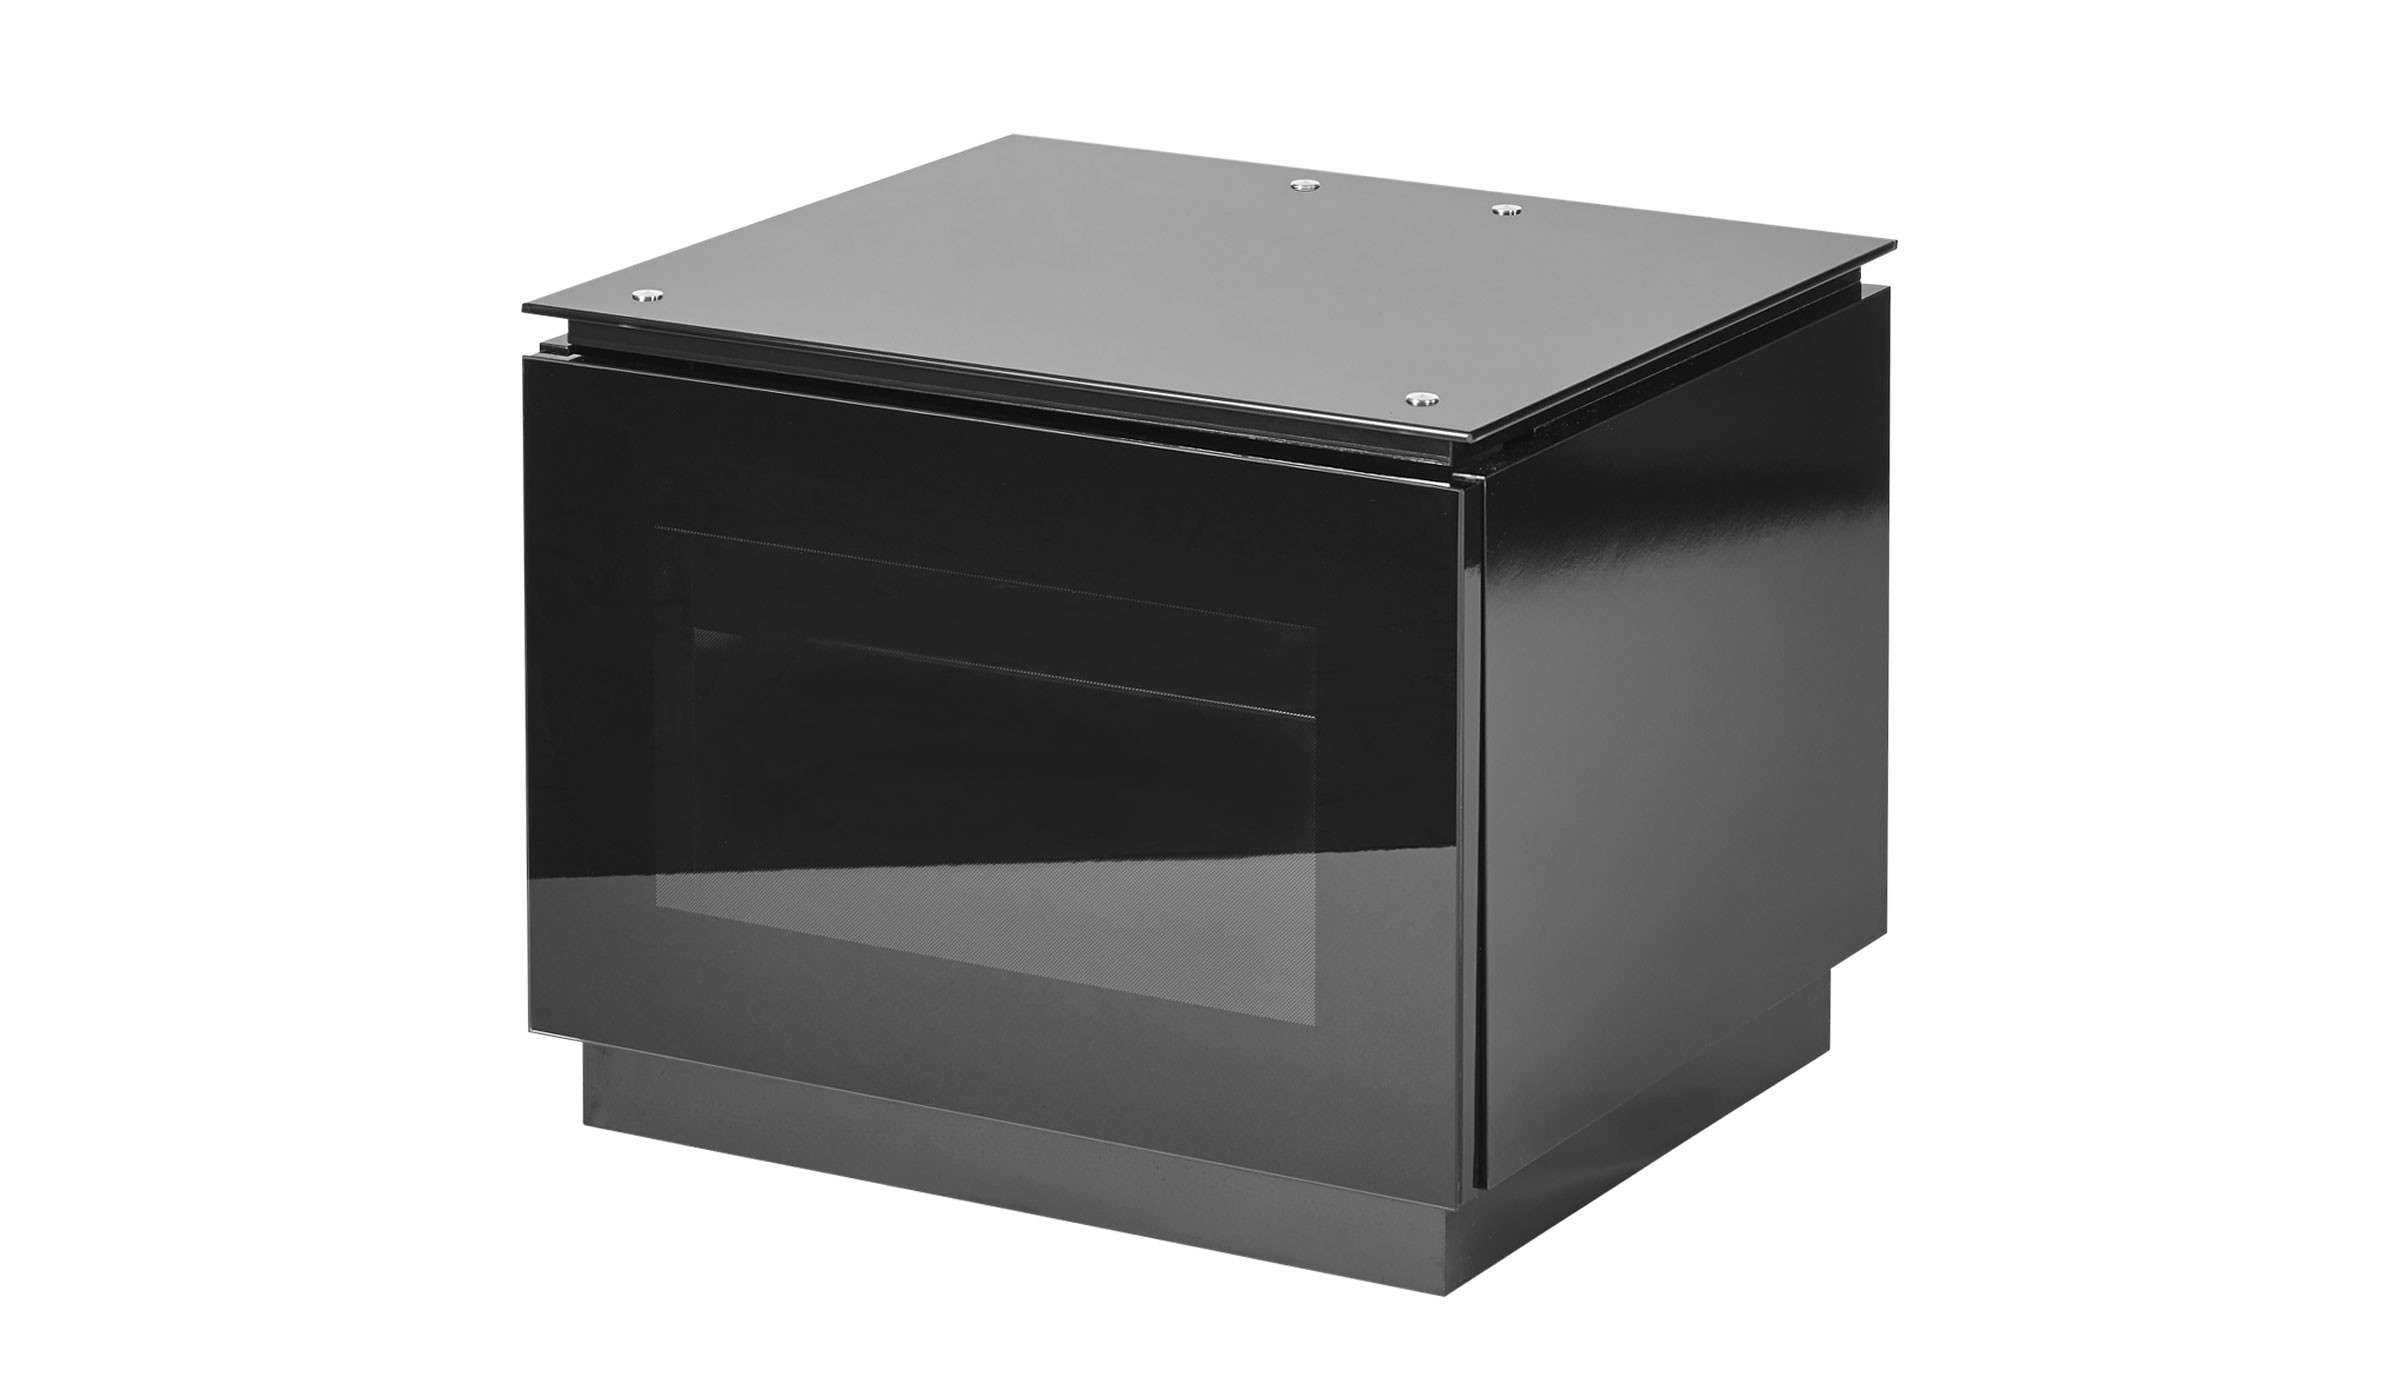 Black Gloss Tv Unit Up To 32 Inch Flat Screen Tv | Mmt D550 Pertaining To Black Tv Cabinets With Doors (View 16 of 20)